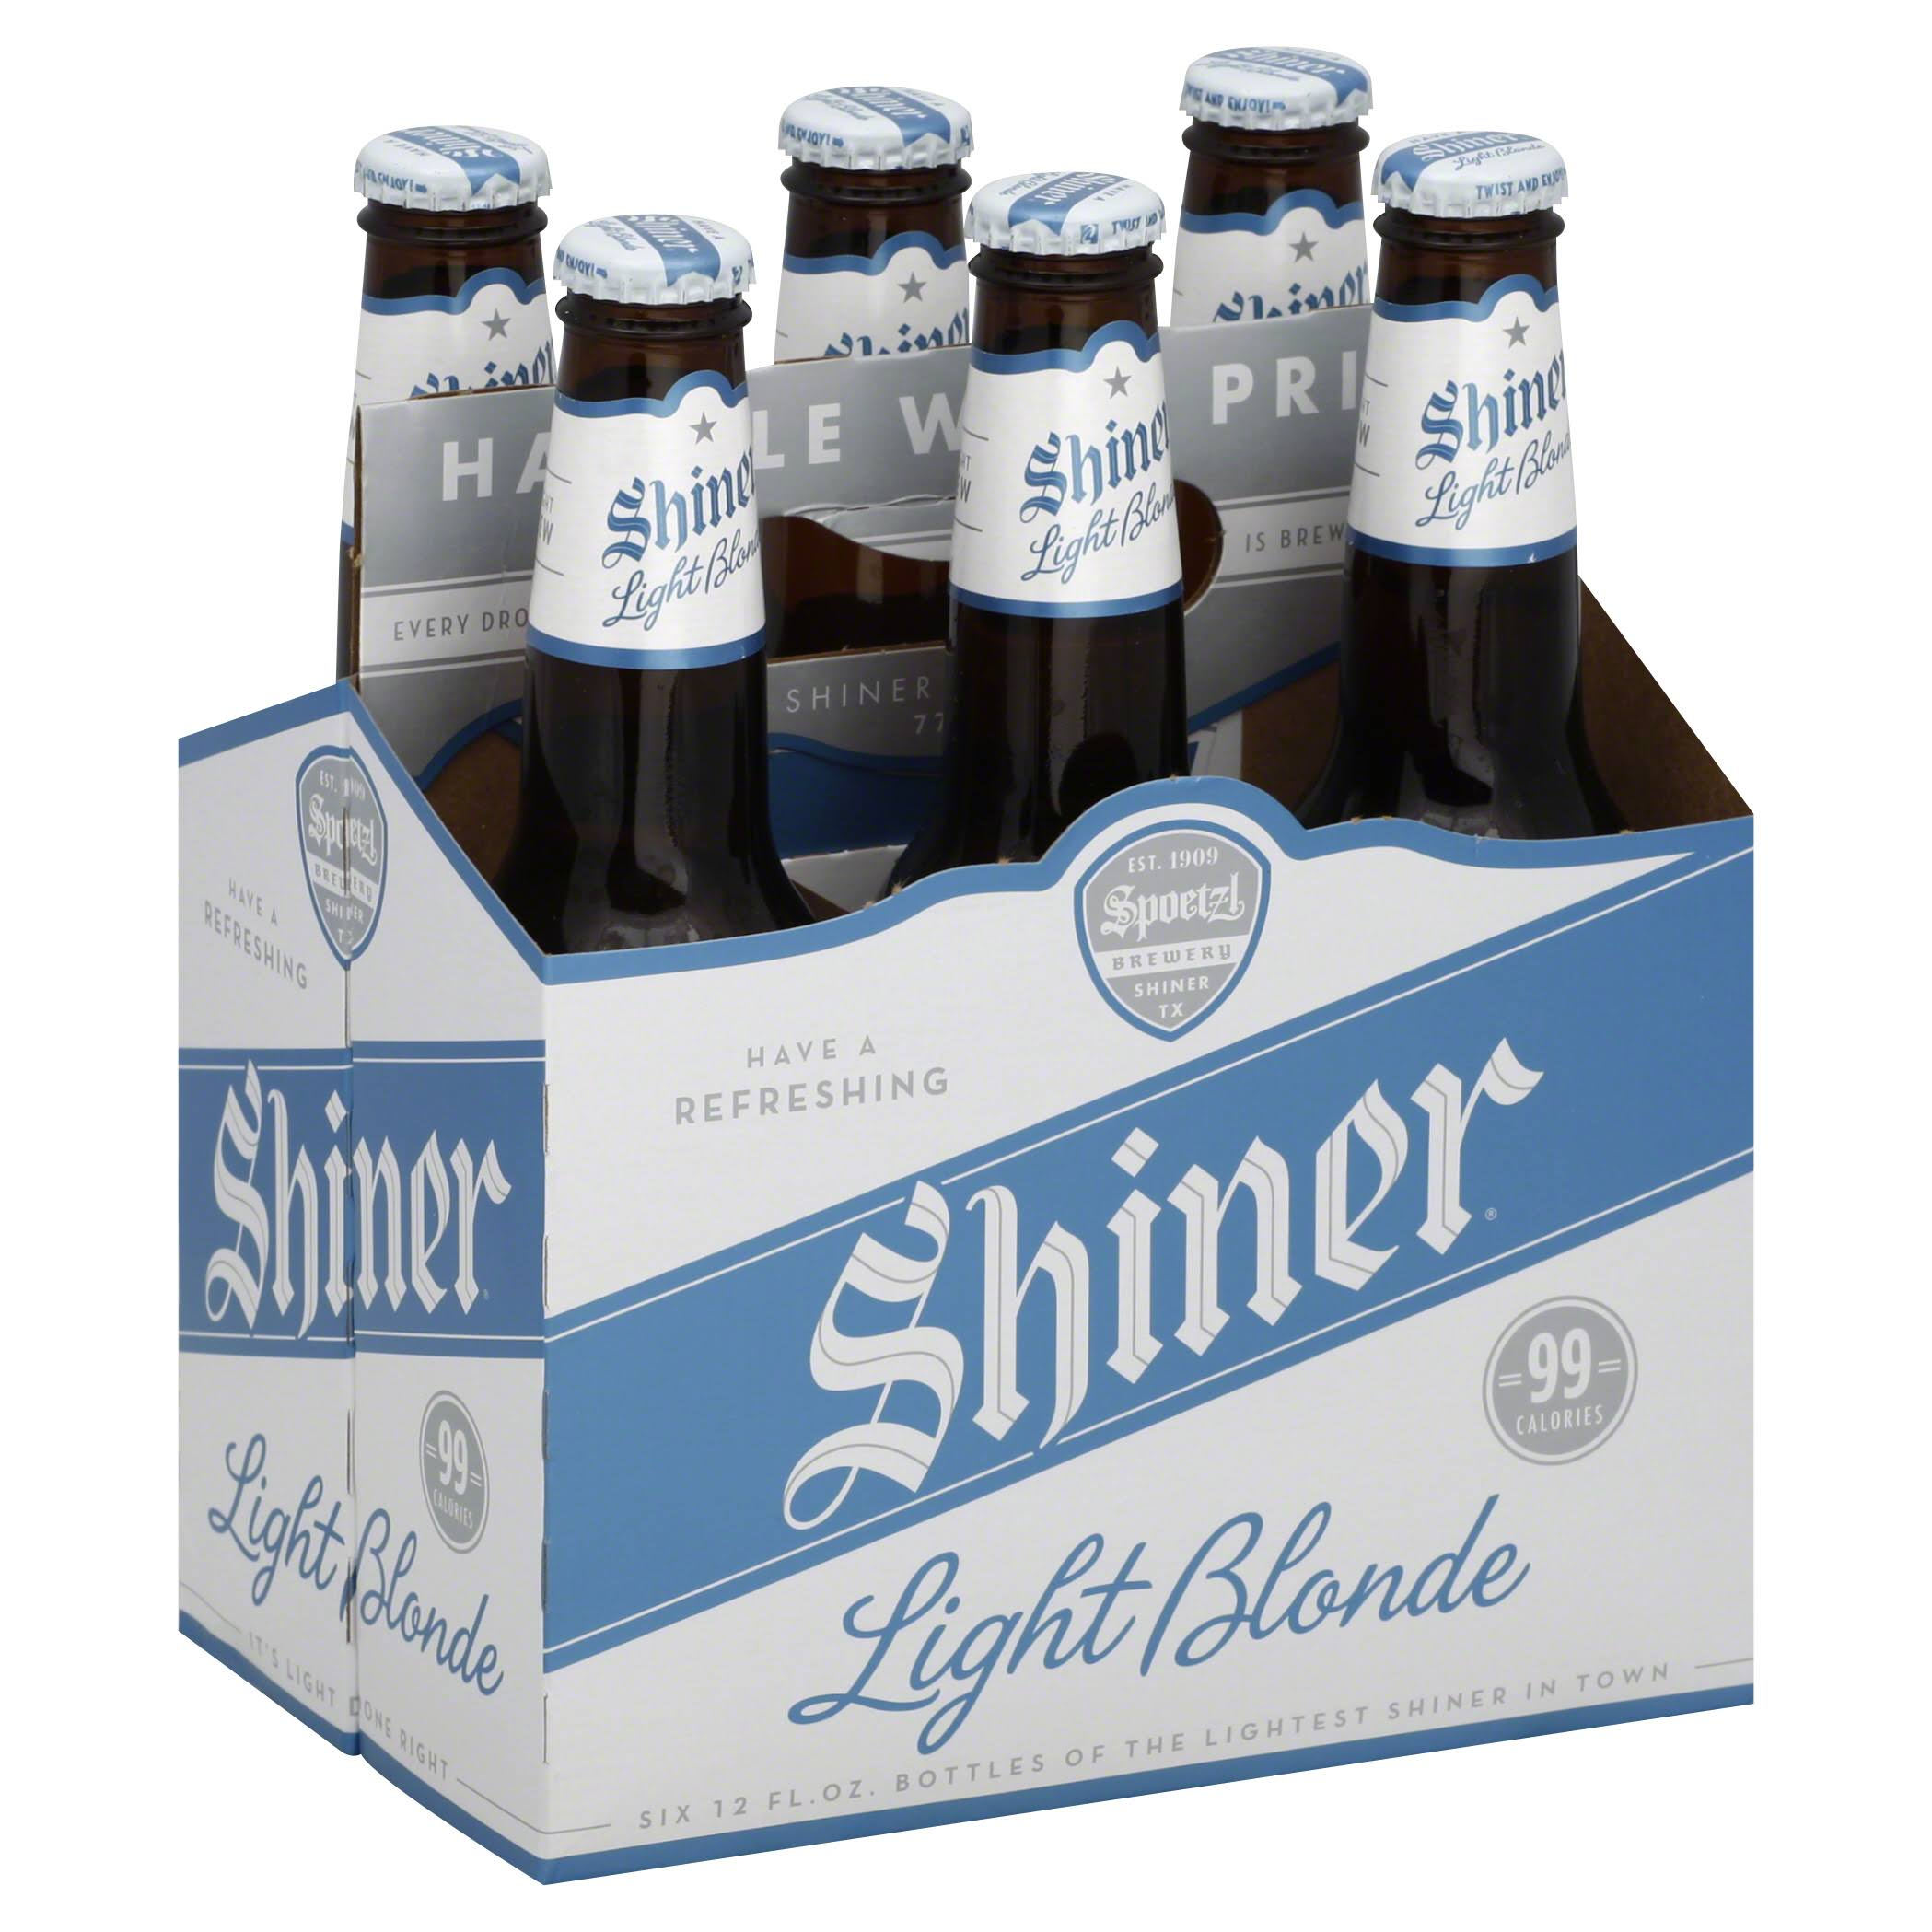 Shiner Light Blonde Beer - 6pk, 12oz